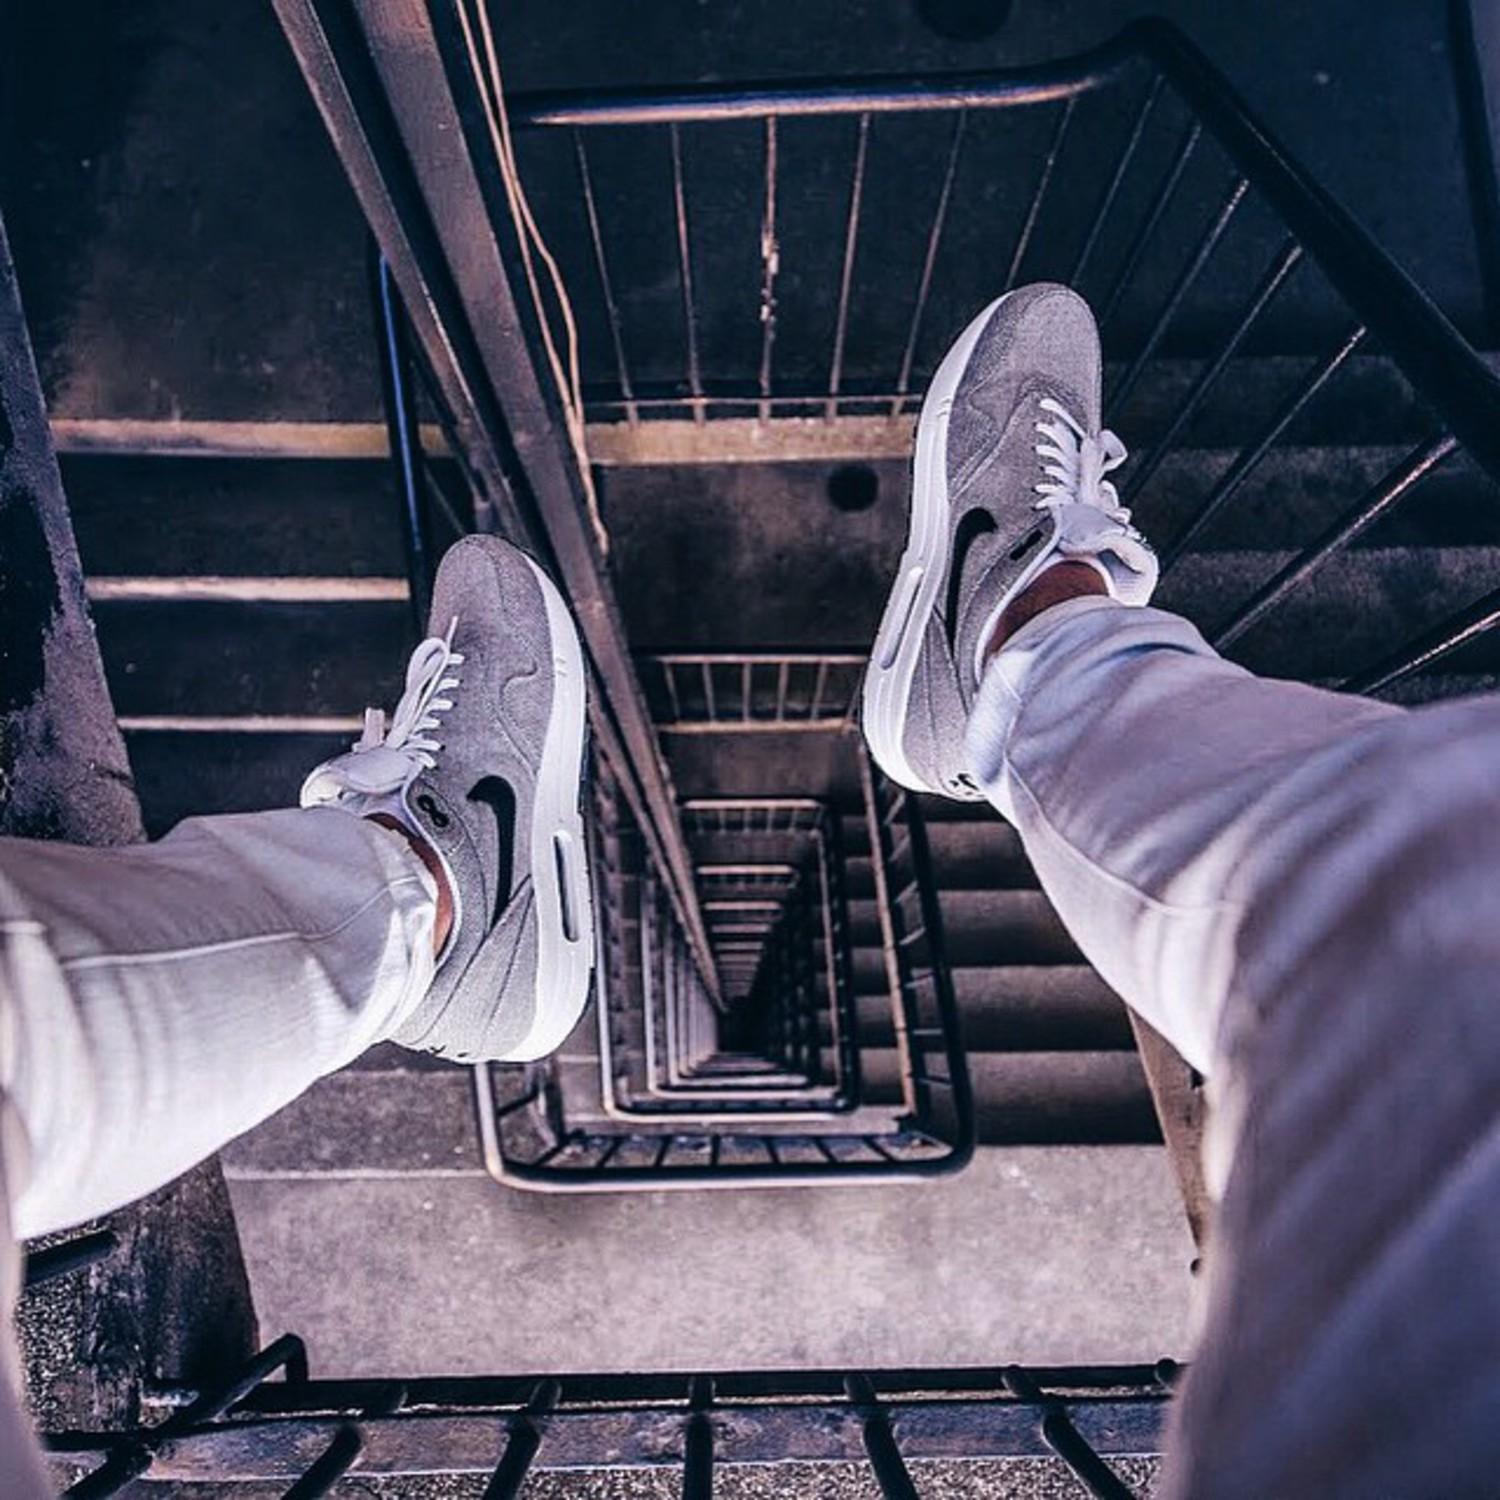 • Looking down with @nike •  Had a cool hour shooting with some great photographers before I had to head home! This was the product of sitting on a precarious handrail shooting my beloved #nike Air max 😉 check out @mrollieali for the behind the scenes shot of this - and the rest of his awesome feed!